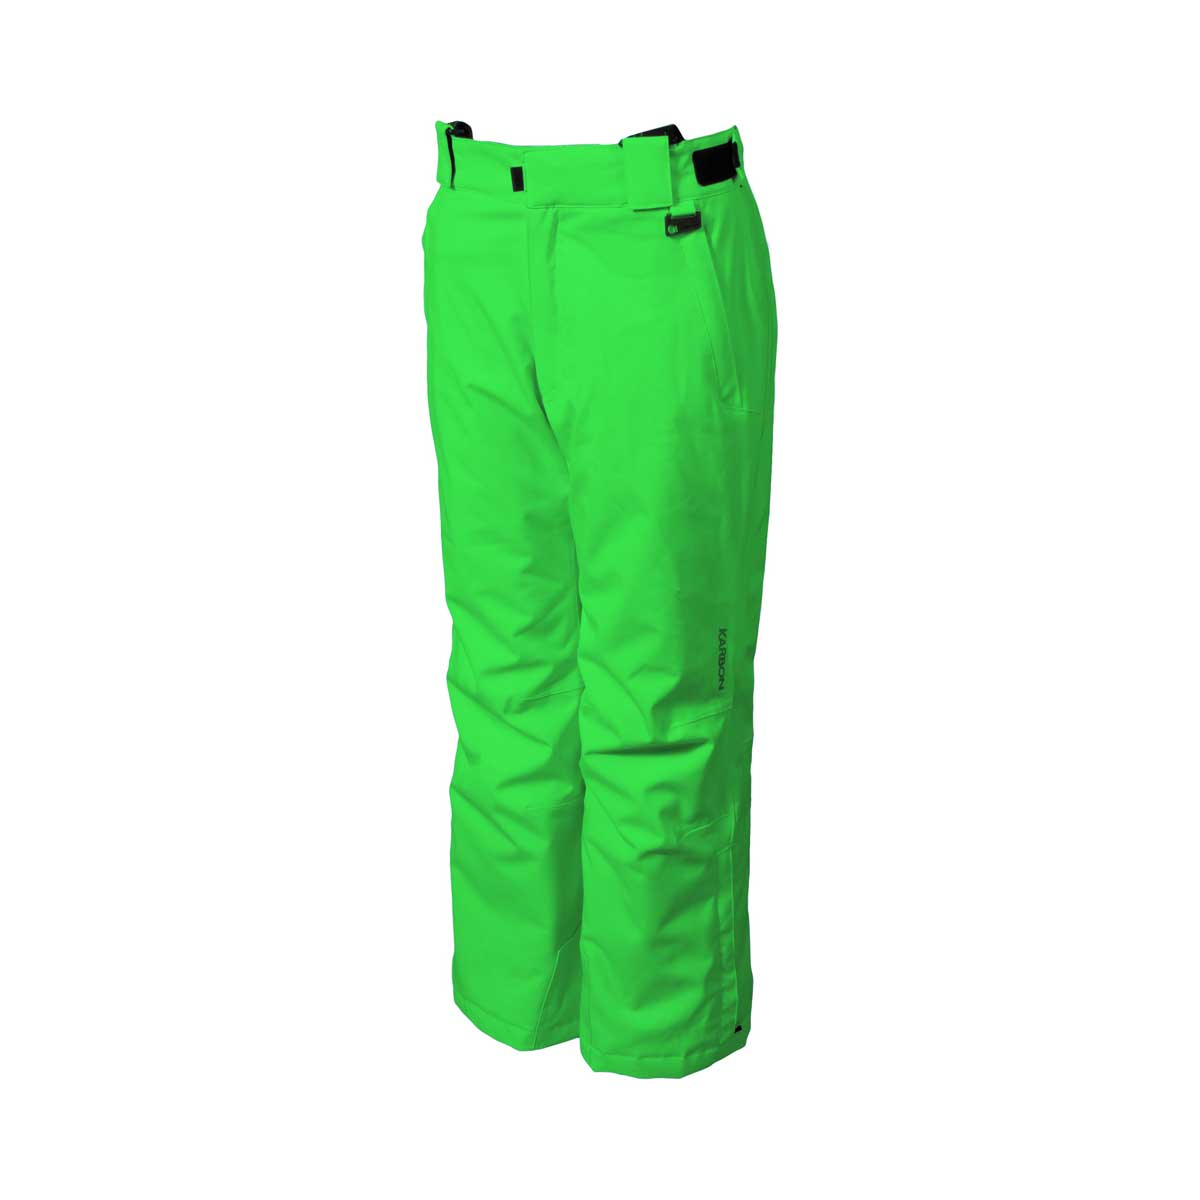 Karbon Boys' Caliper Pant in Lime Green